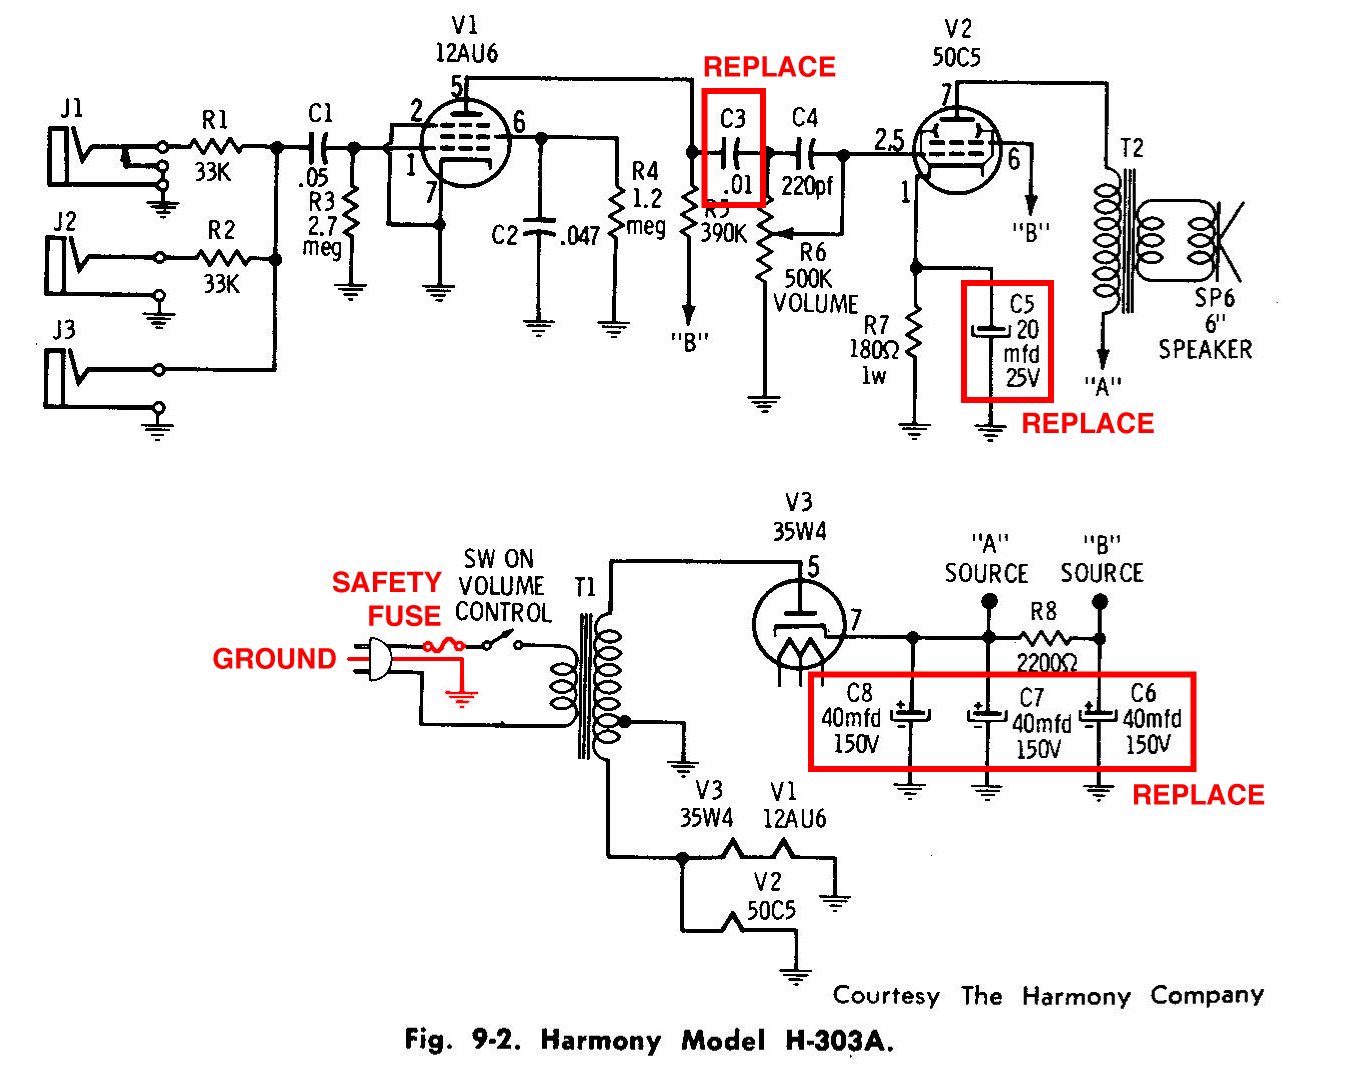 1940s 3 Way Switch Wiring Diagram Rebuilding A Vintage Tube Amplifier Slackpropagation Harmony H303a Schematic